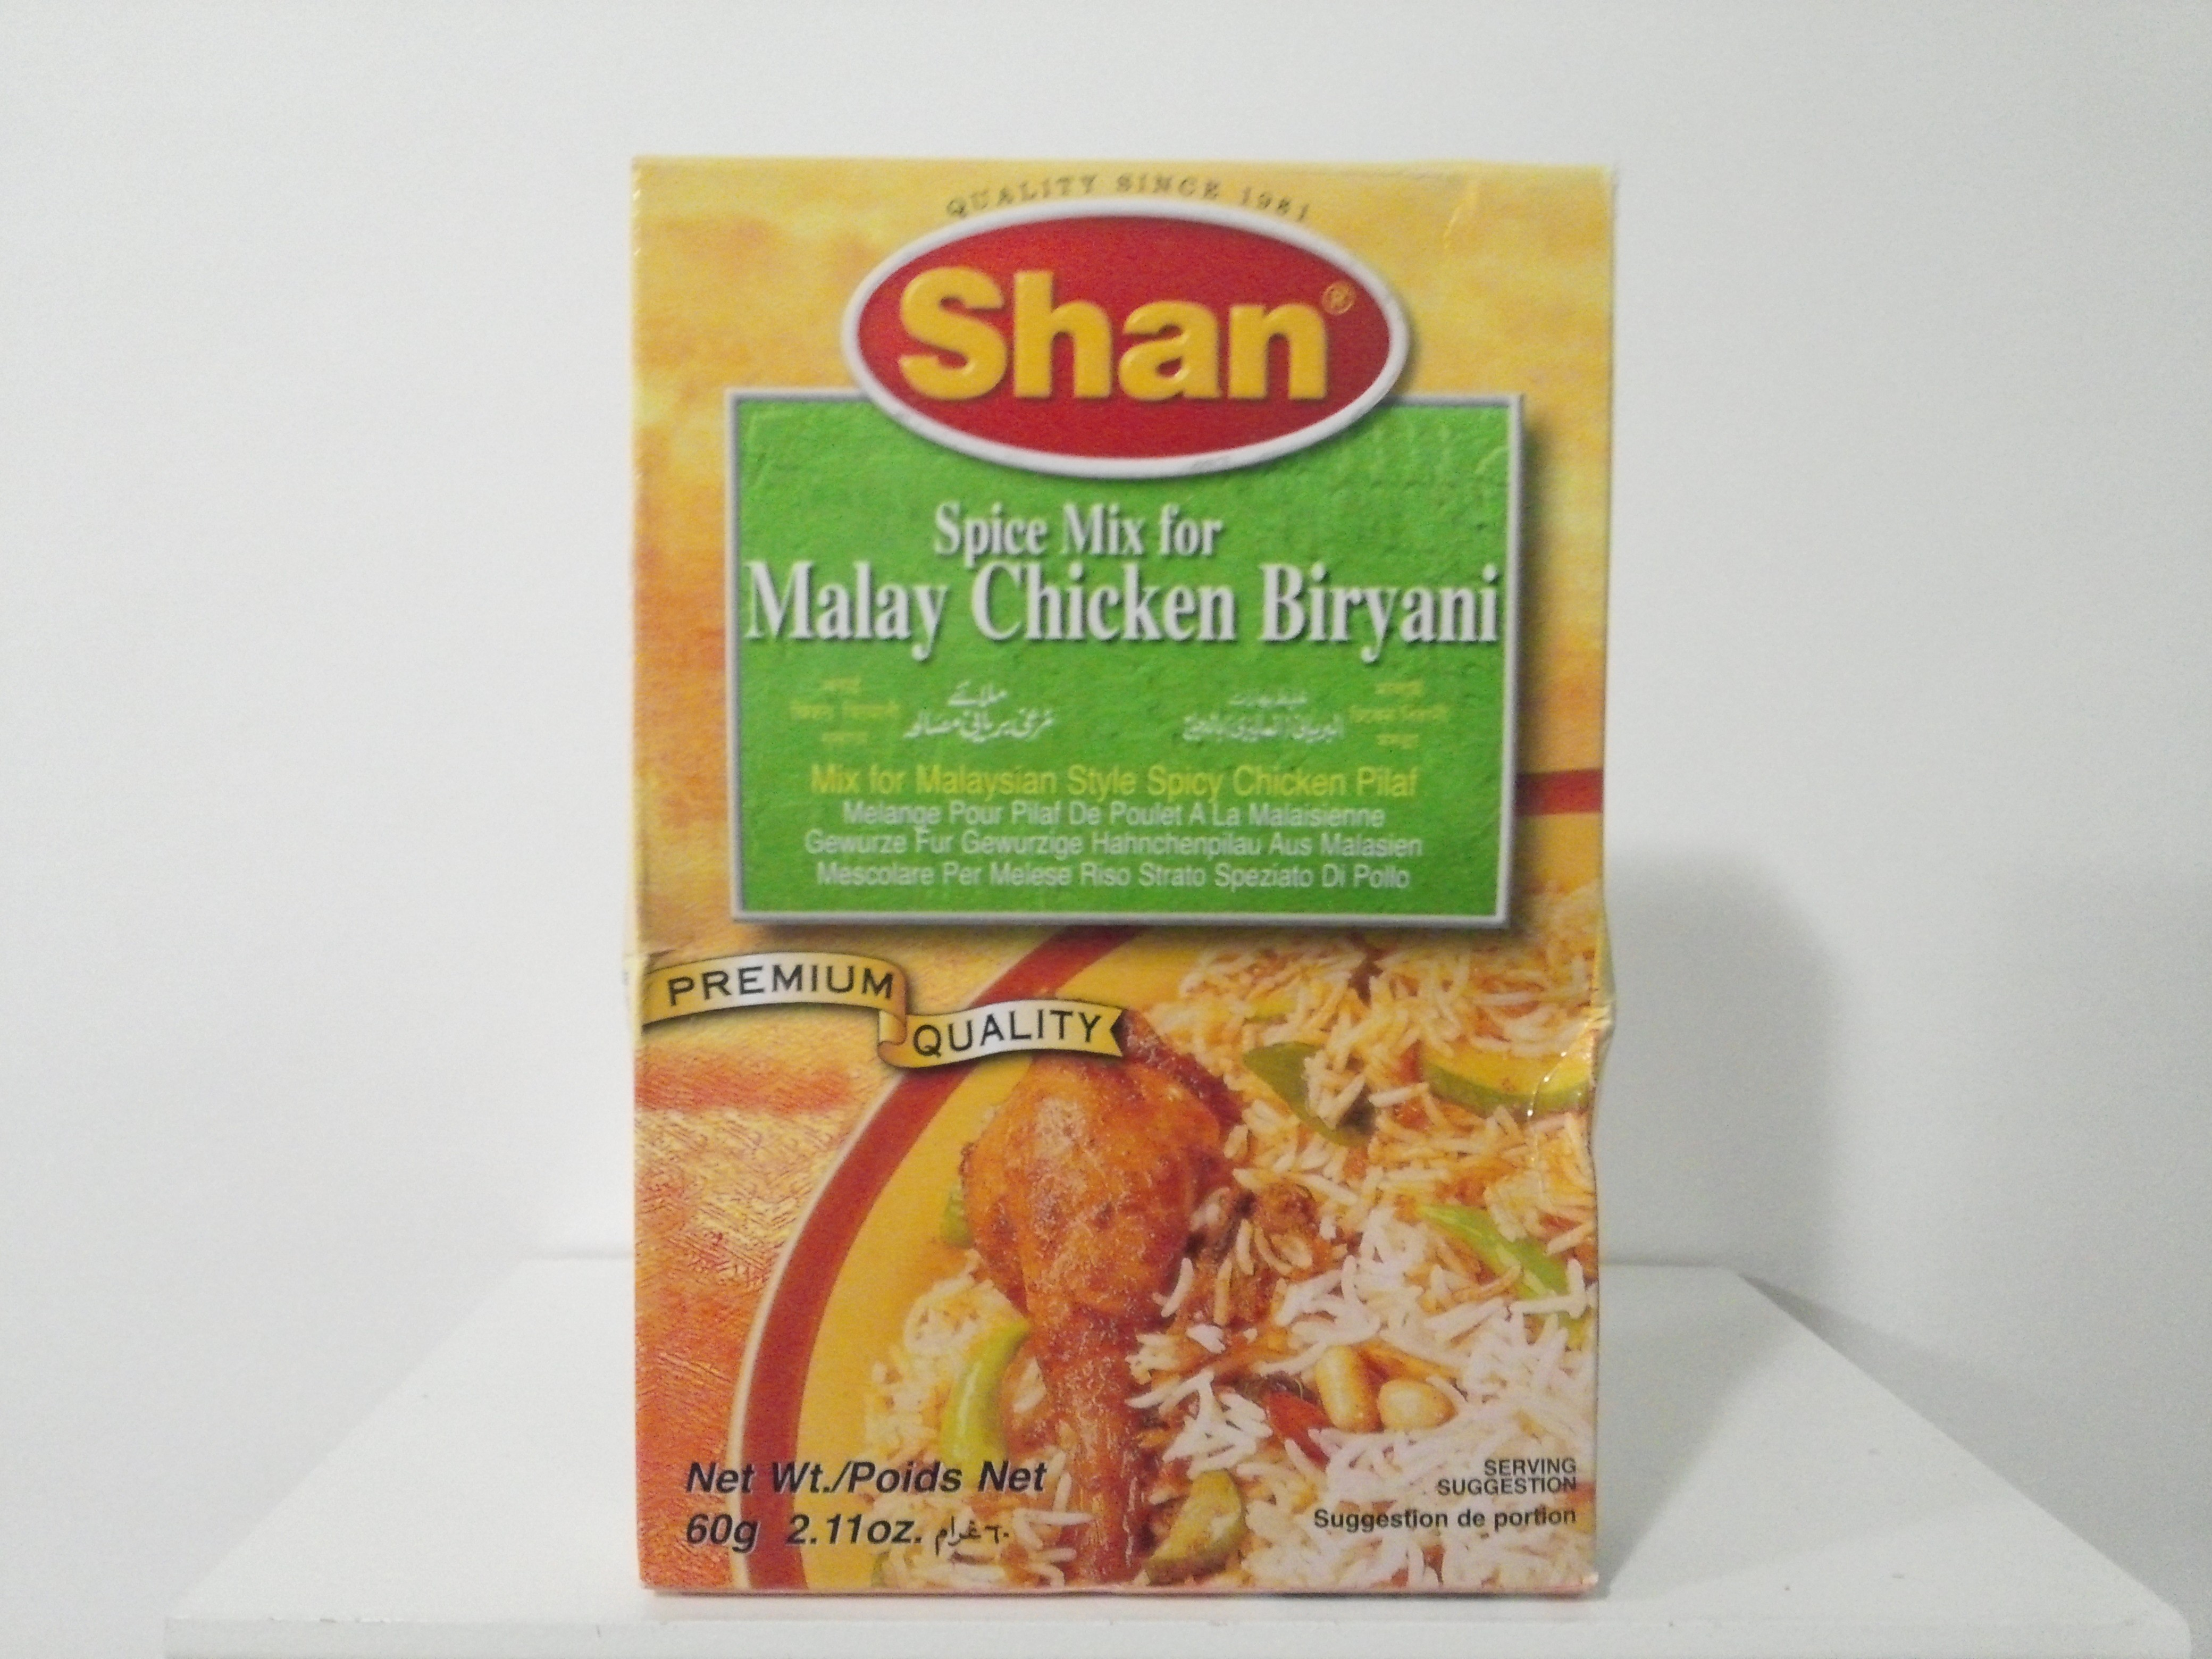 Shan Malay Chicken Biryani Spice Mix 50 grm